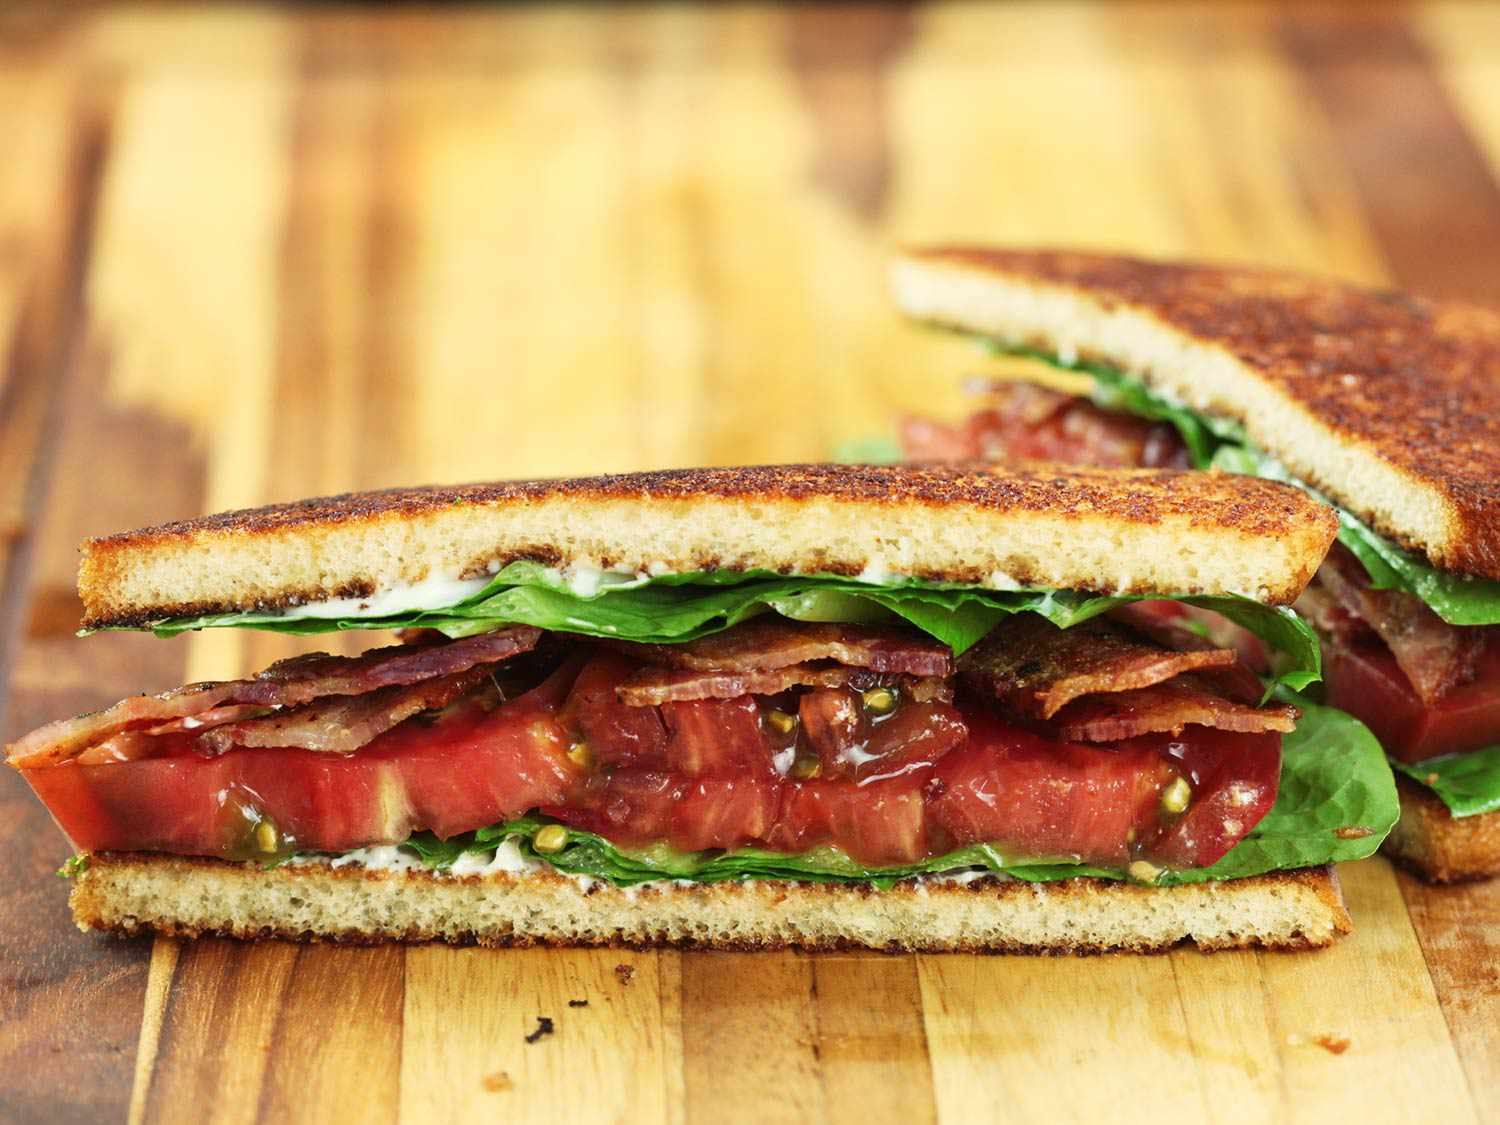 Interior view of a halved BLT, with layers of mayo, lettuce, bacon, and tomato visible between toasted bread slices